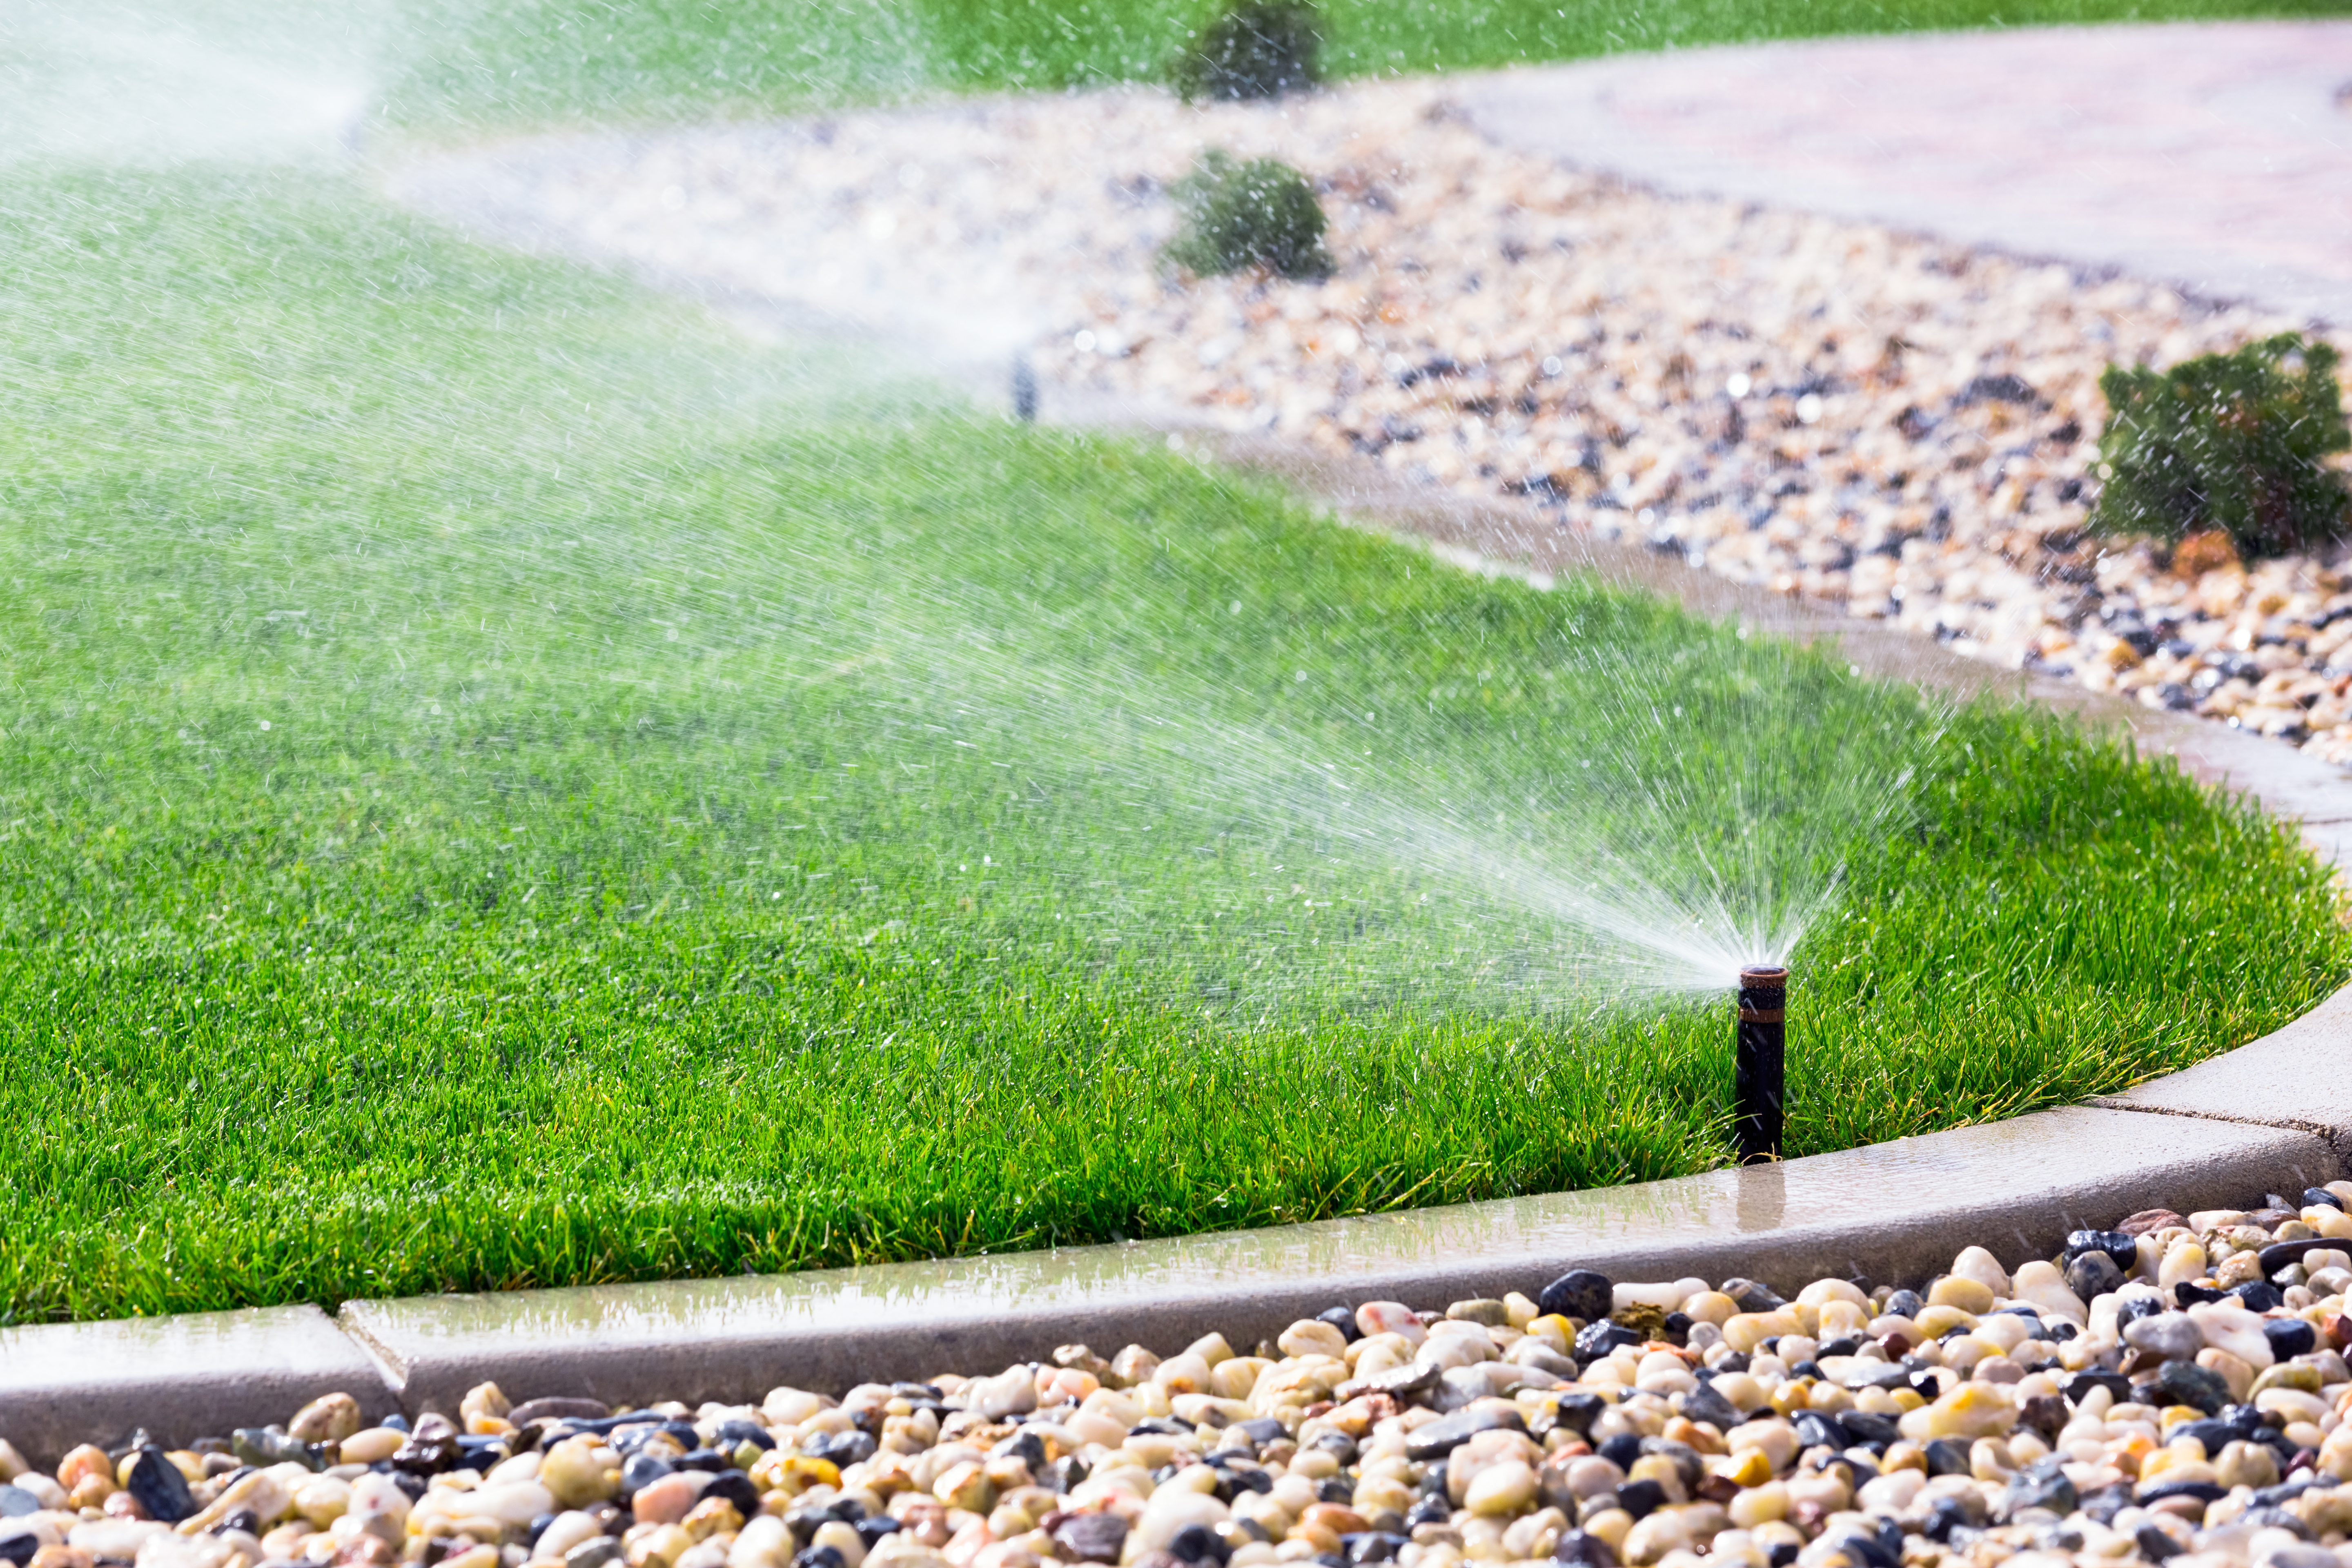 Is Your Irrigation System Ready for Spring? Do a Spring Irrigation Check-Up!